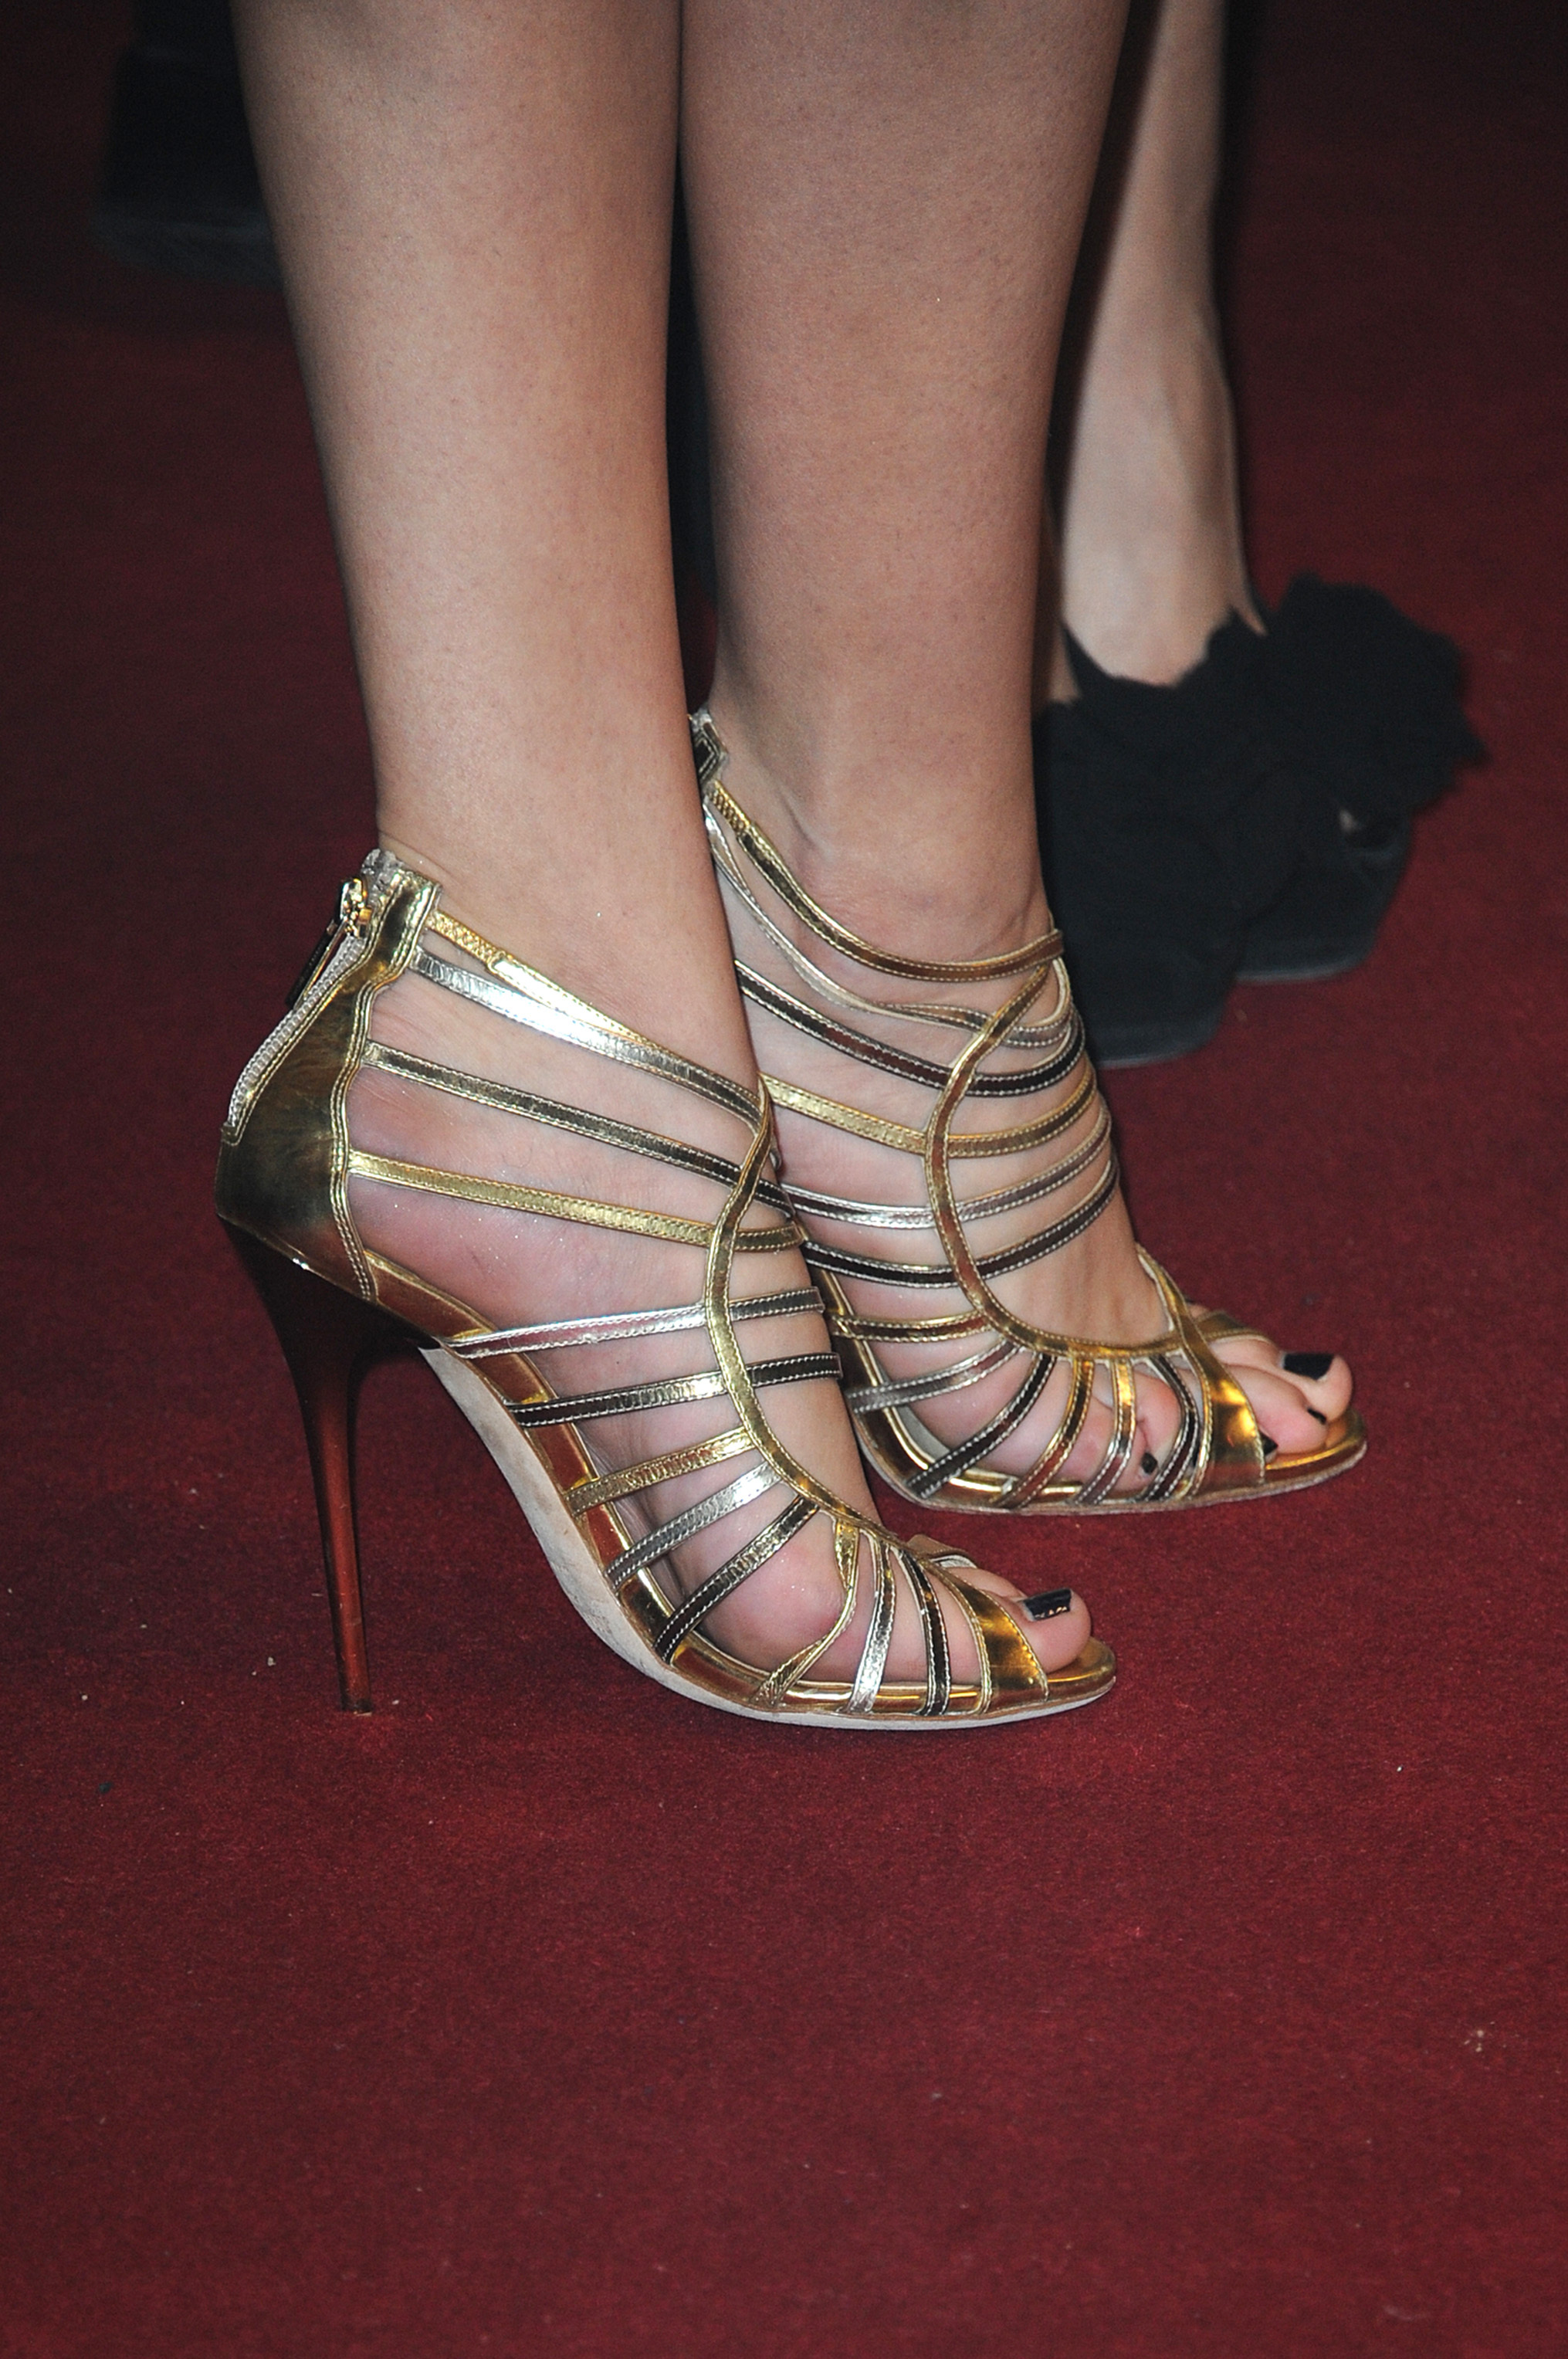 selena gomez s feet selena gomez s feet premiere of the movie